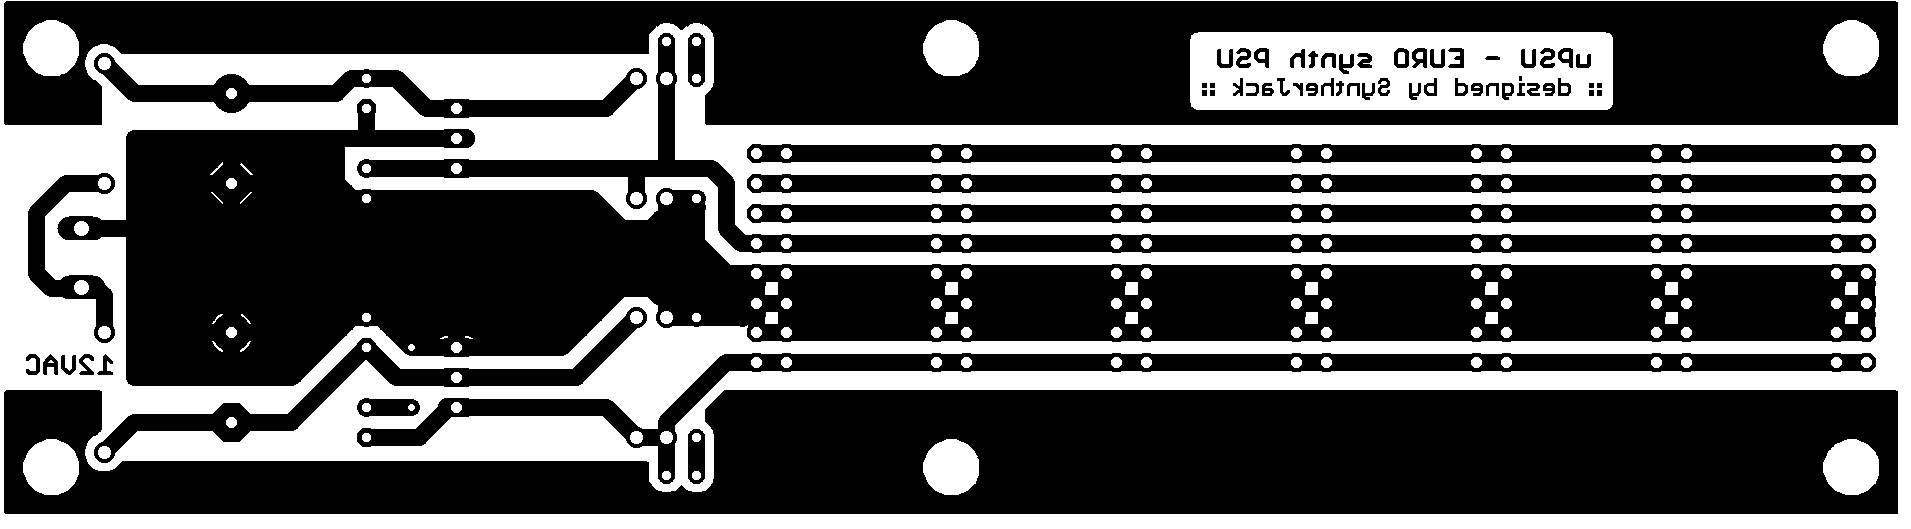 Mini PSU PCB BOTTOM layer